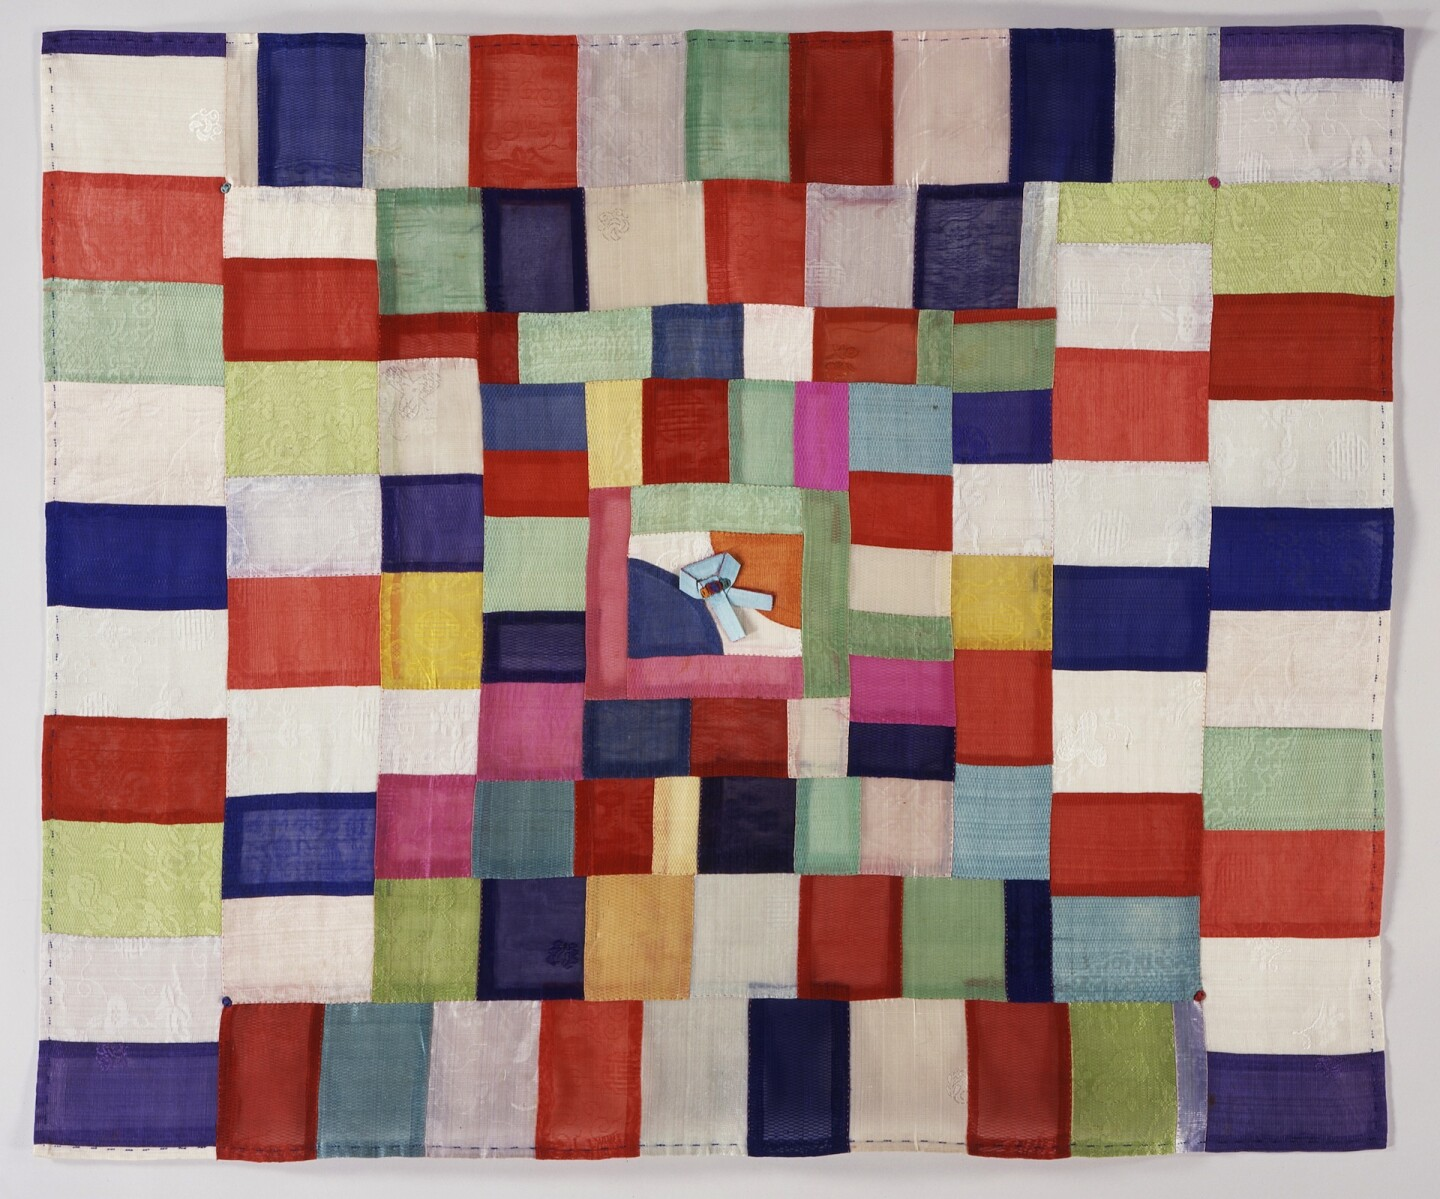 Wrapping Cloth (Bojagi), Korea, Joseon dynasty (1392-1910), late 19th-early 20th century, silk gauze with plain-weave and weft-float patterning patchwork